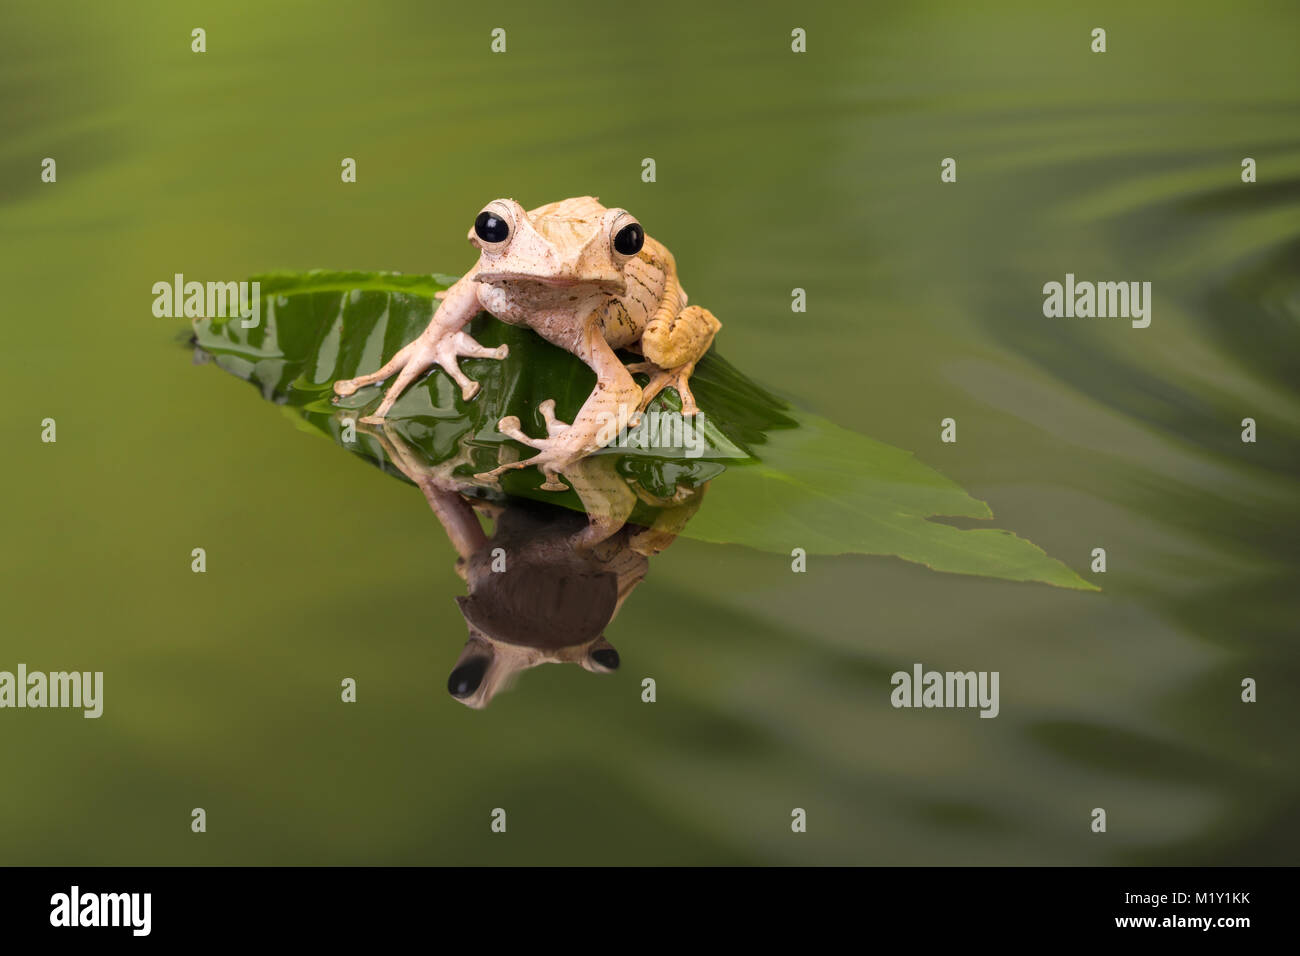 Borneo Eared Tree Frog sitting on a leaf in rippled water - Stock Image